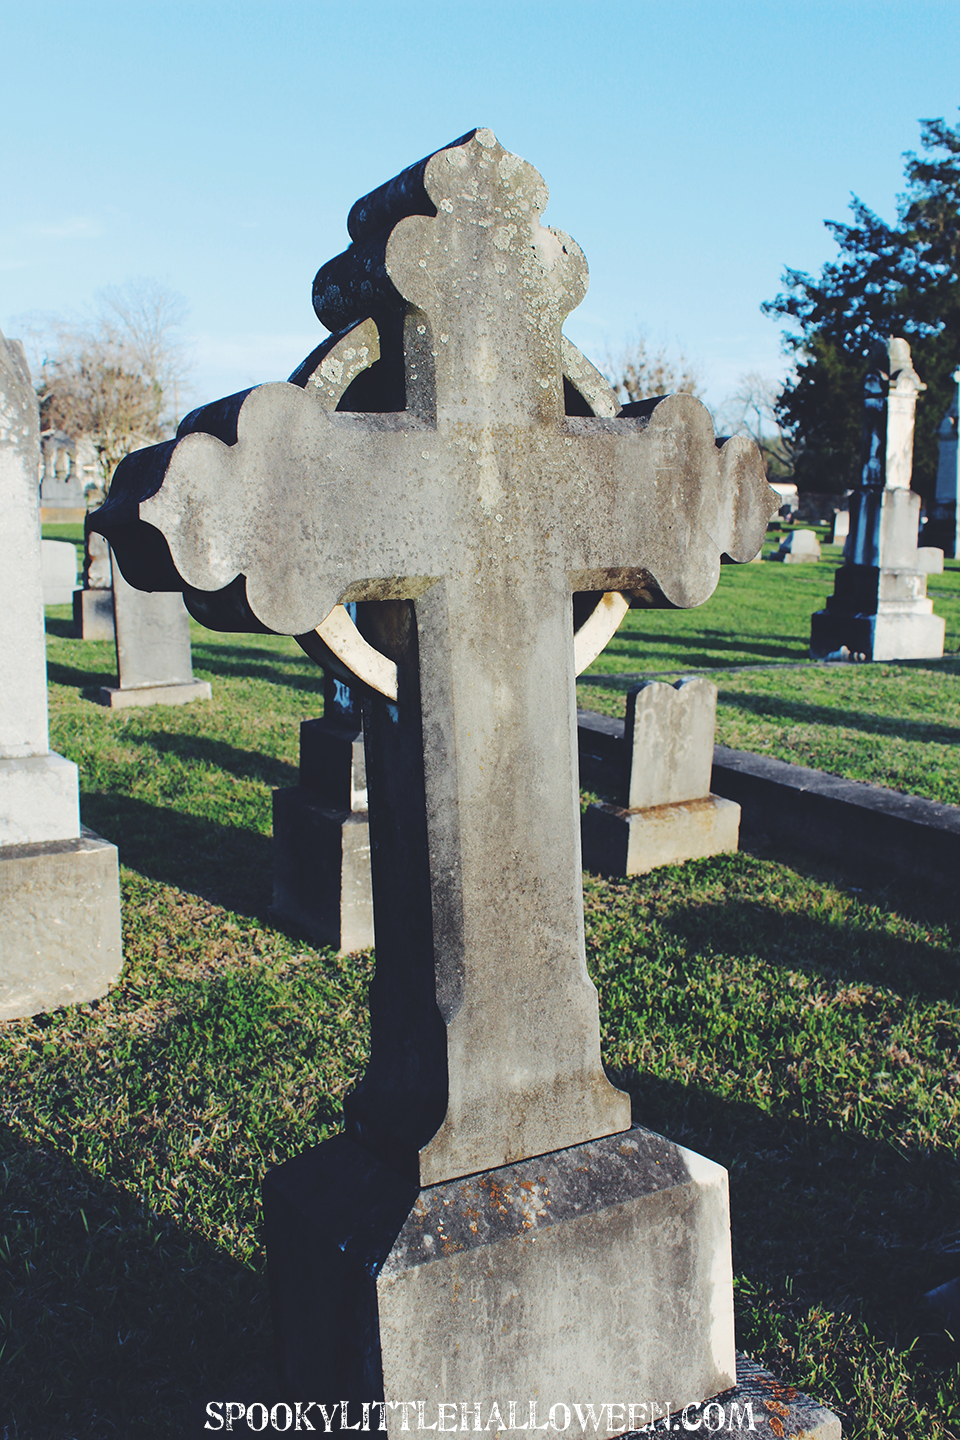 I love wandering old cemeteries, and seeing the beauty of Catholic Cemetery No. 1 in Victoria, Texas was no exception! Take a virtual tour.